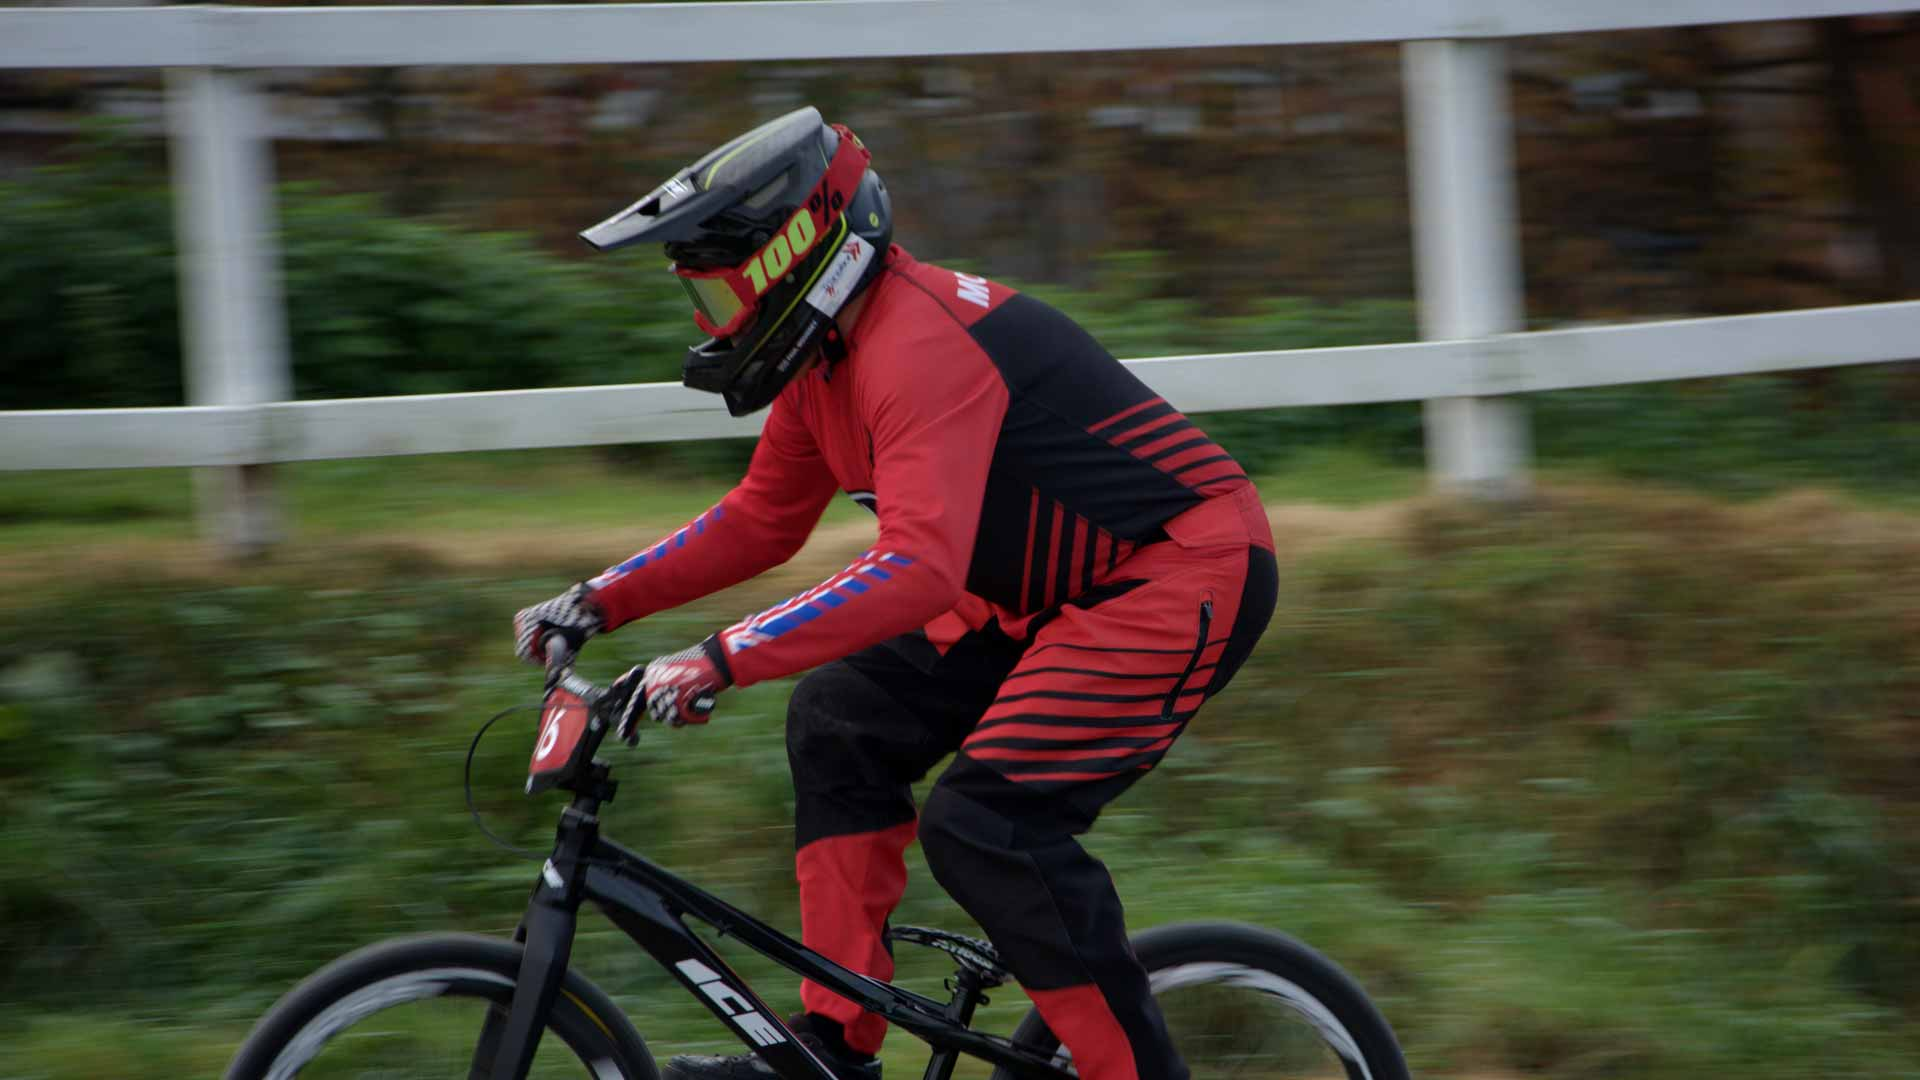 Paul Mounsey riding his BMX round a race track.